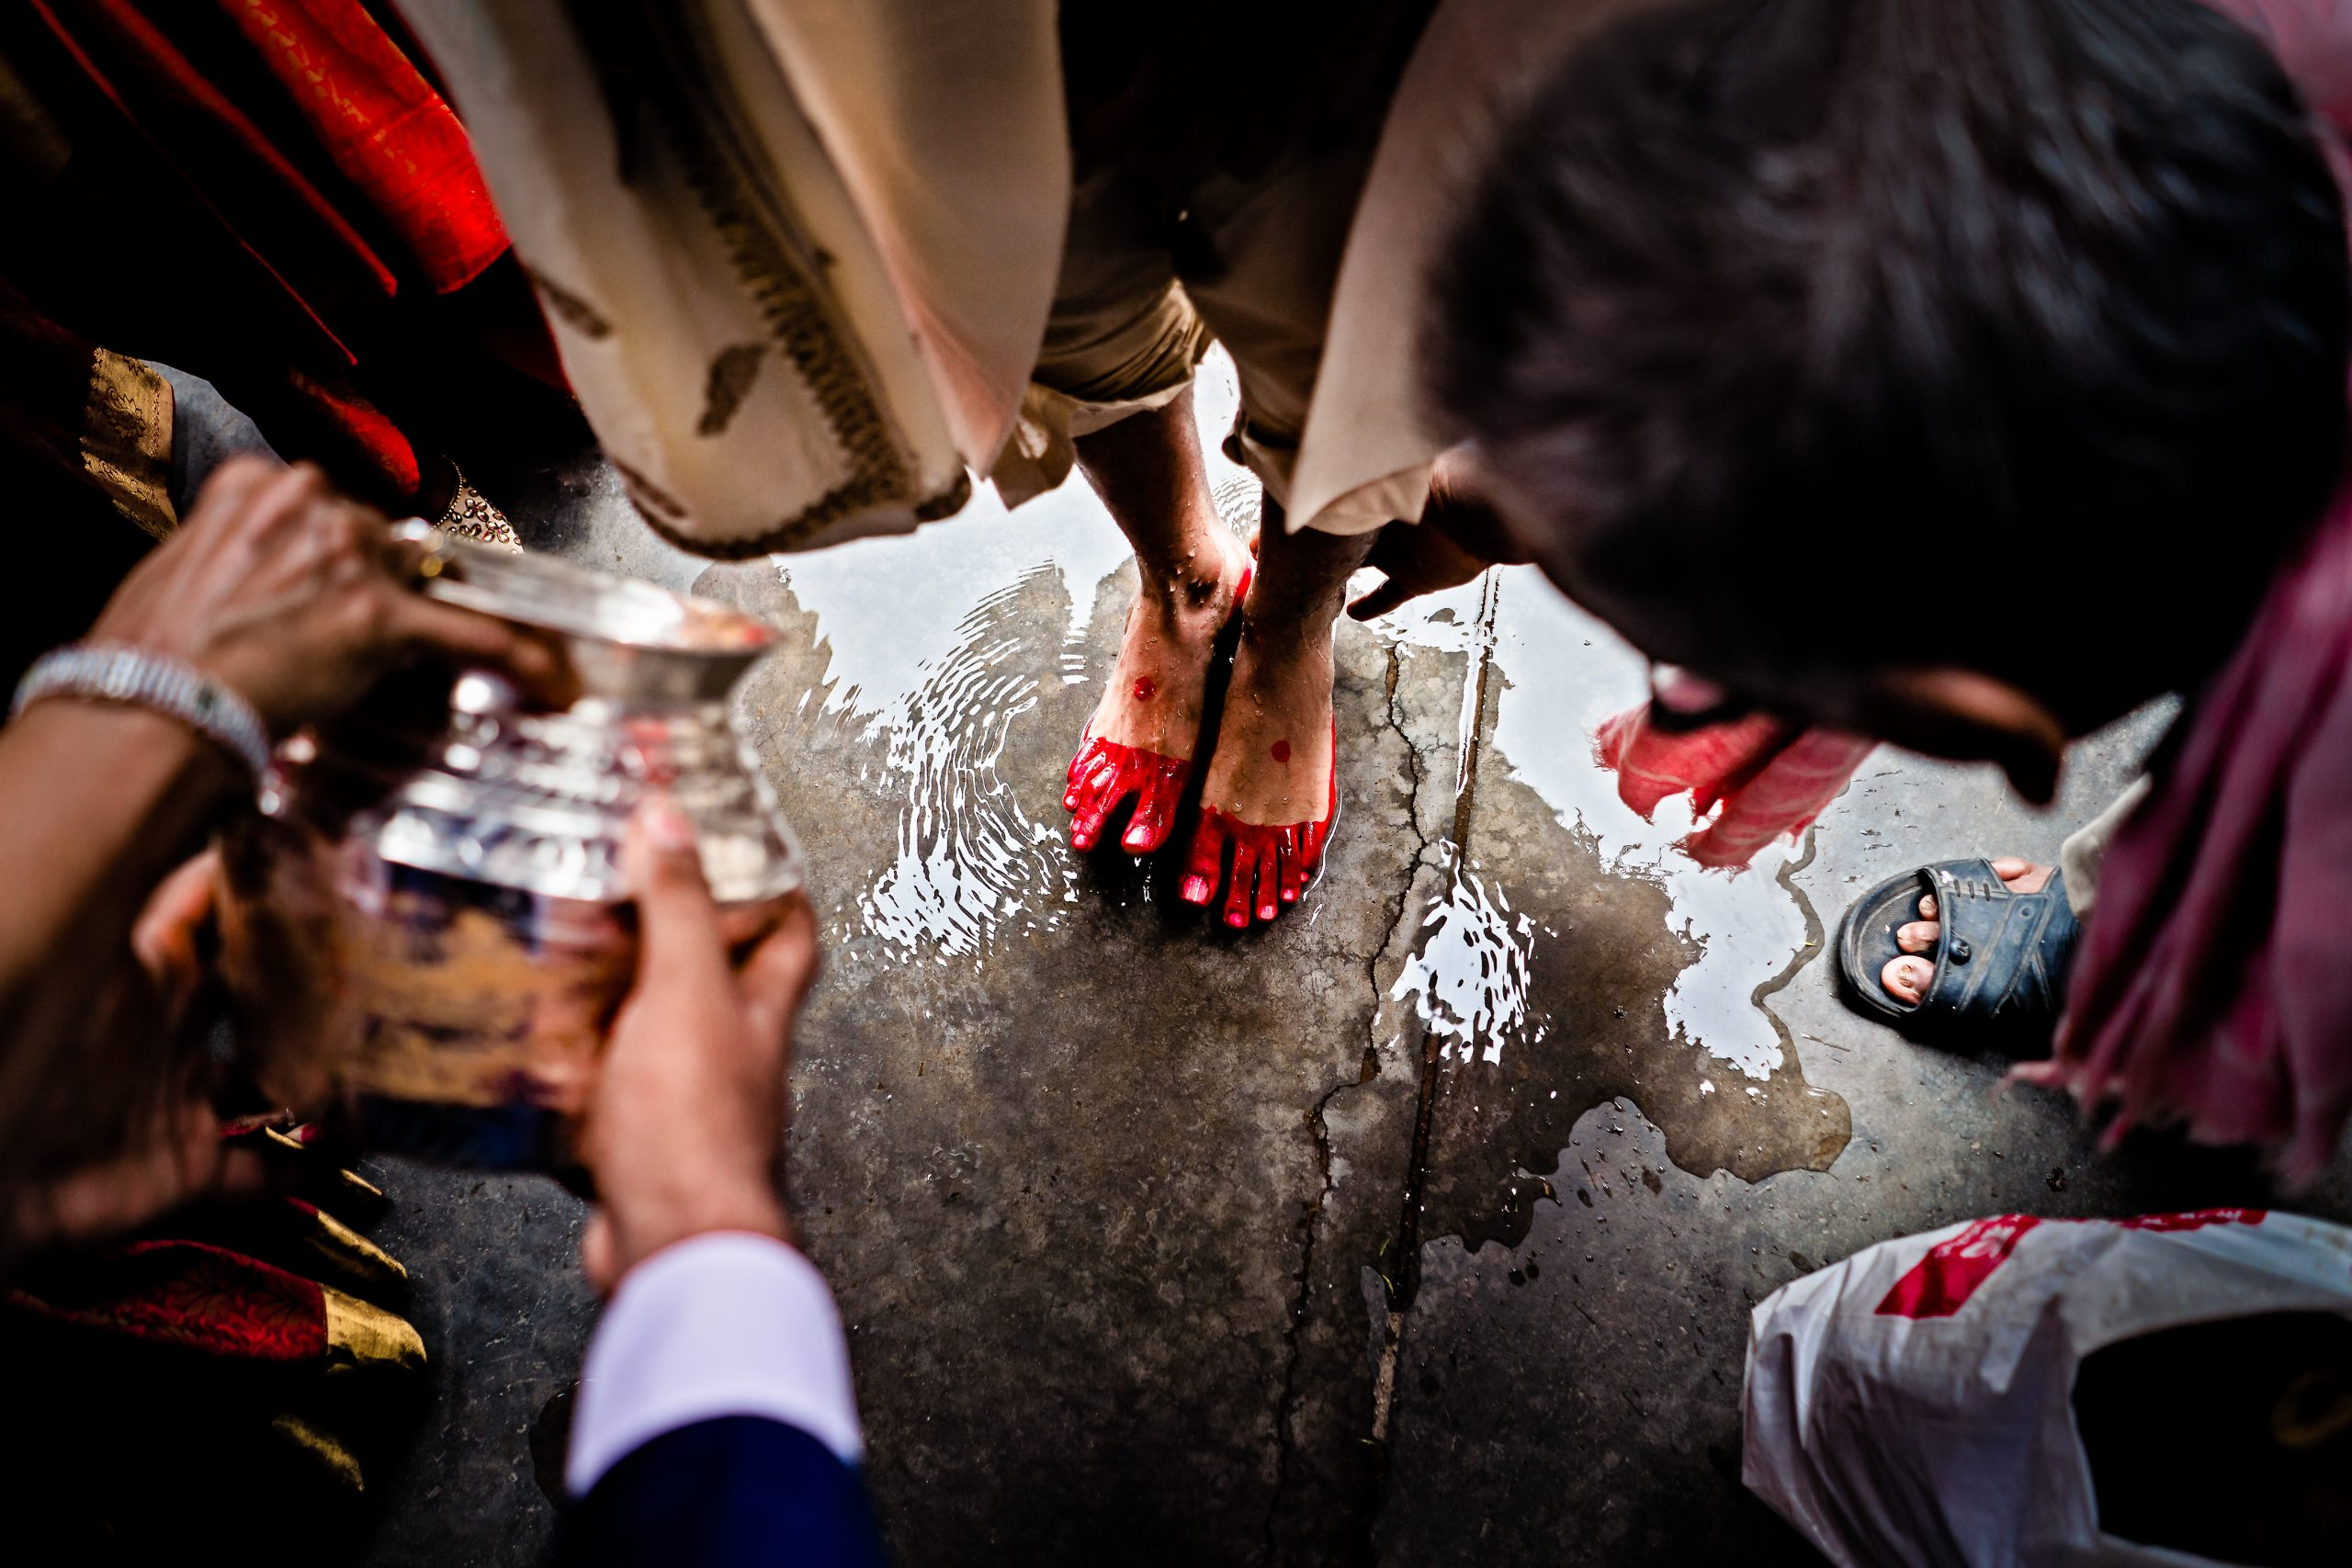 Indian wedding tradition of washing the feet of the groom